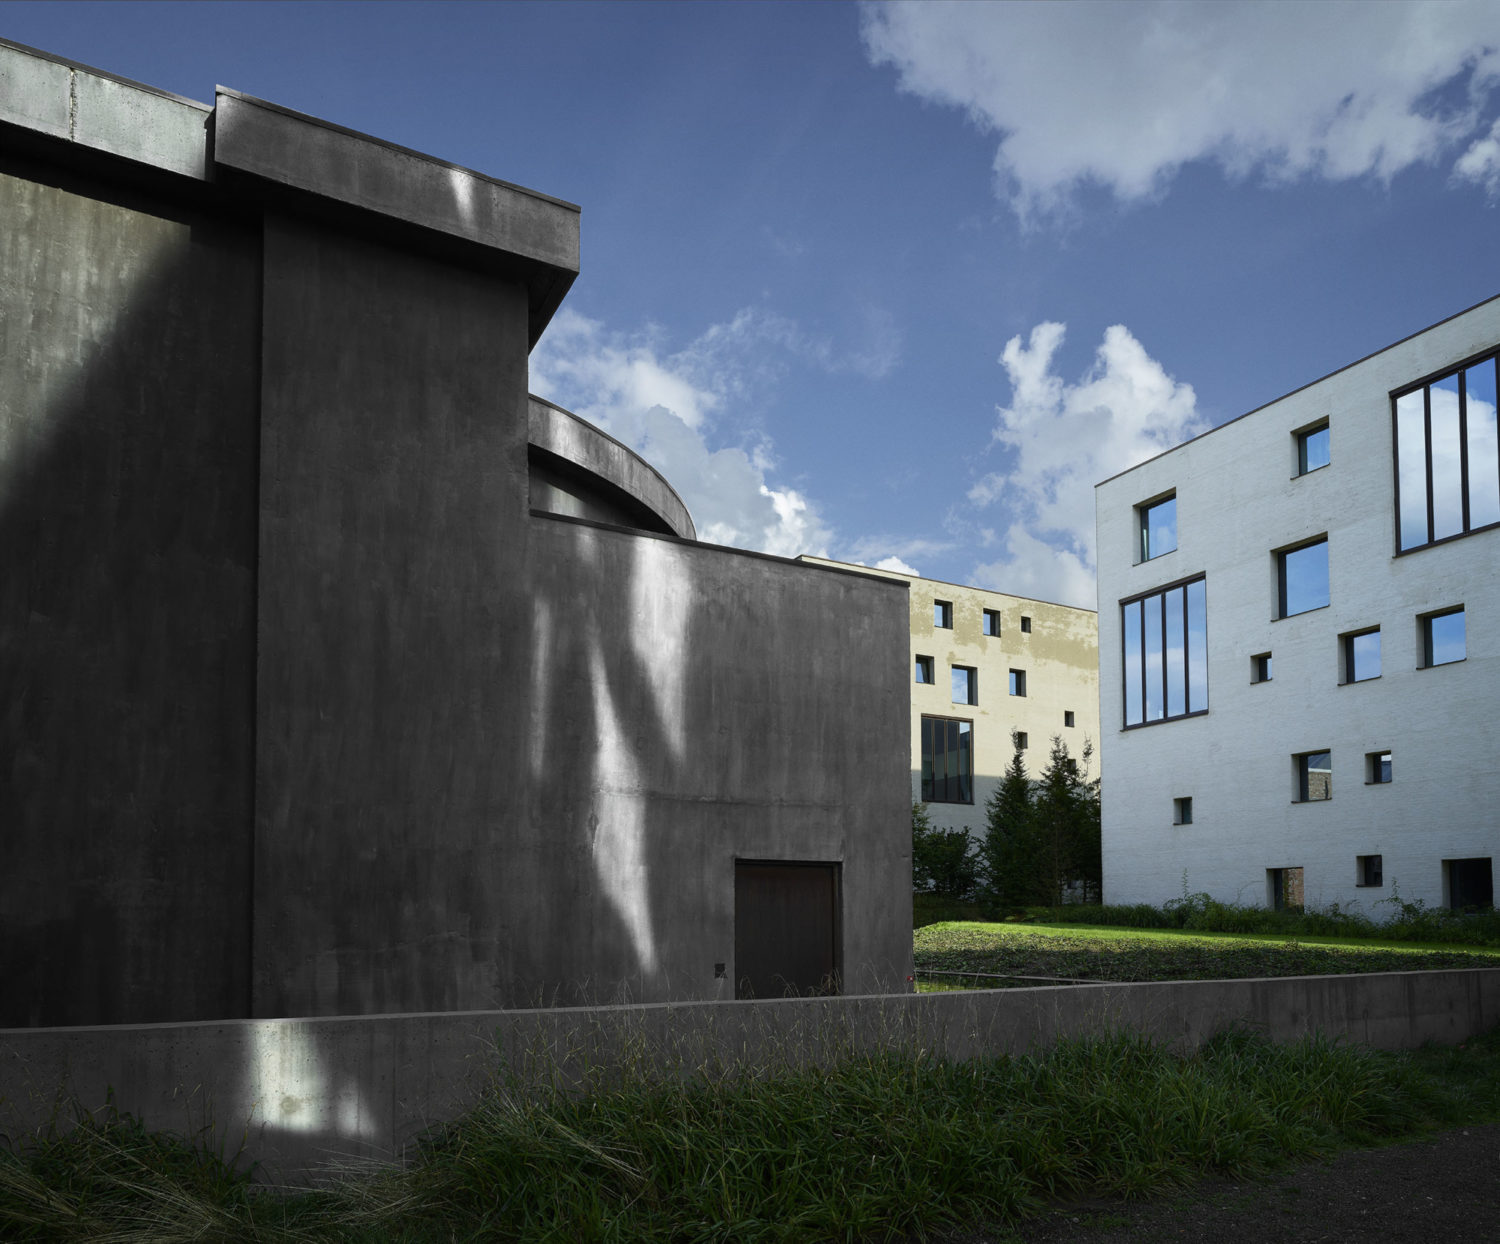 """A view of Kanaal, which includes the entrance to the building that houses Kapoor's """"At the Edge of the World"""""""